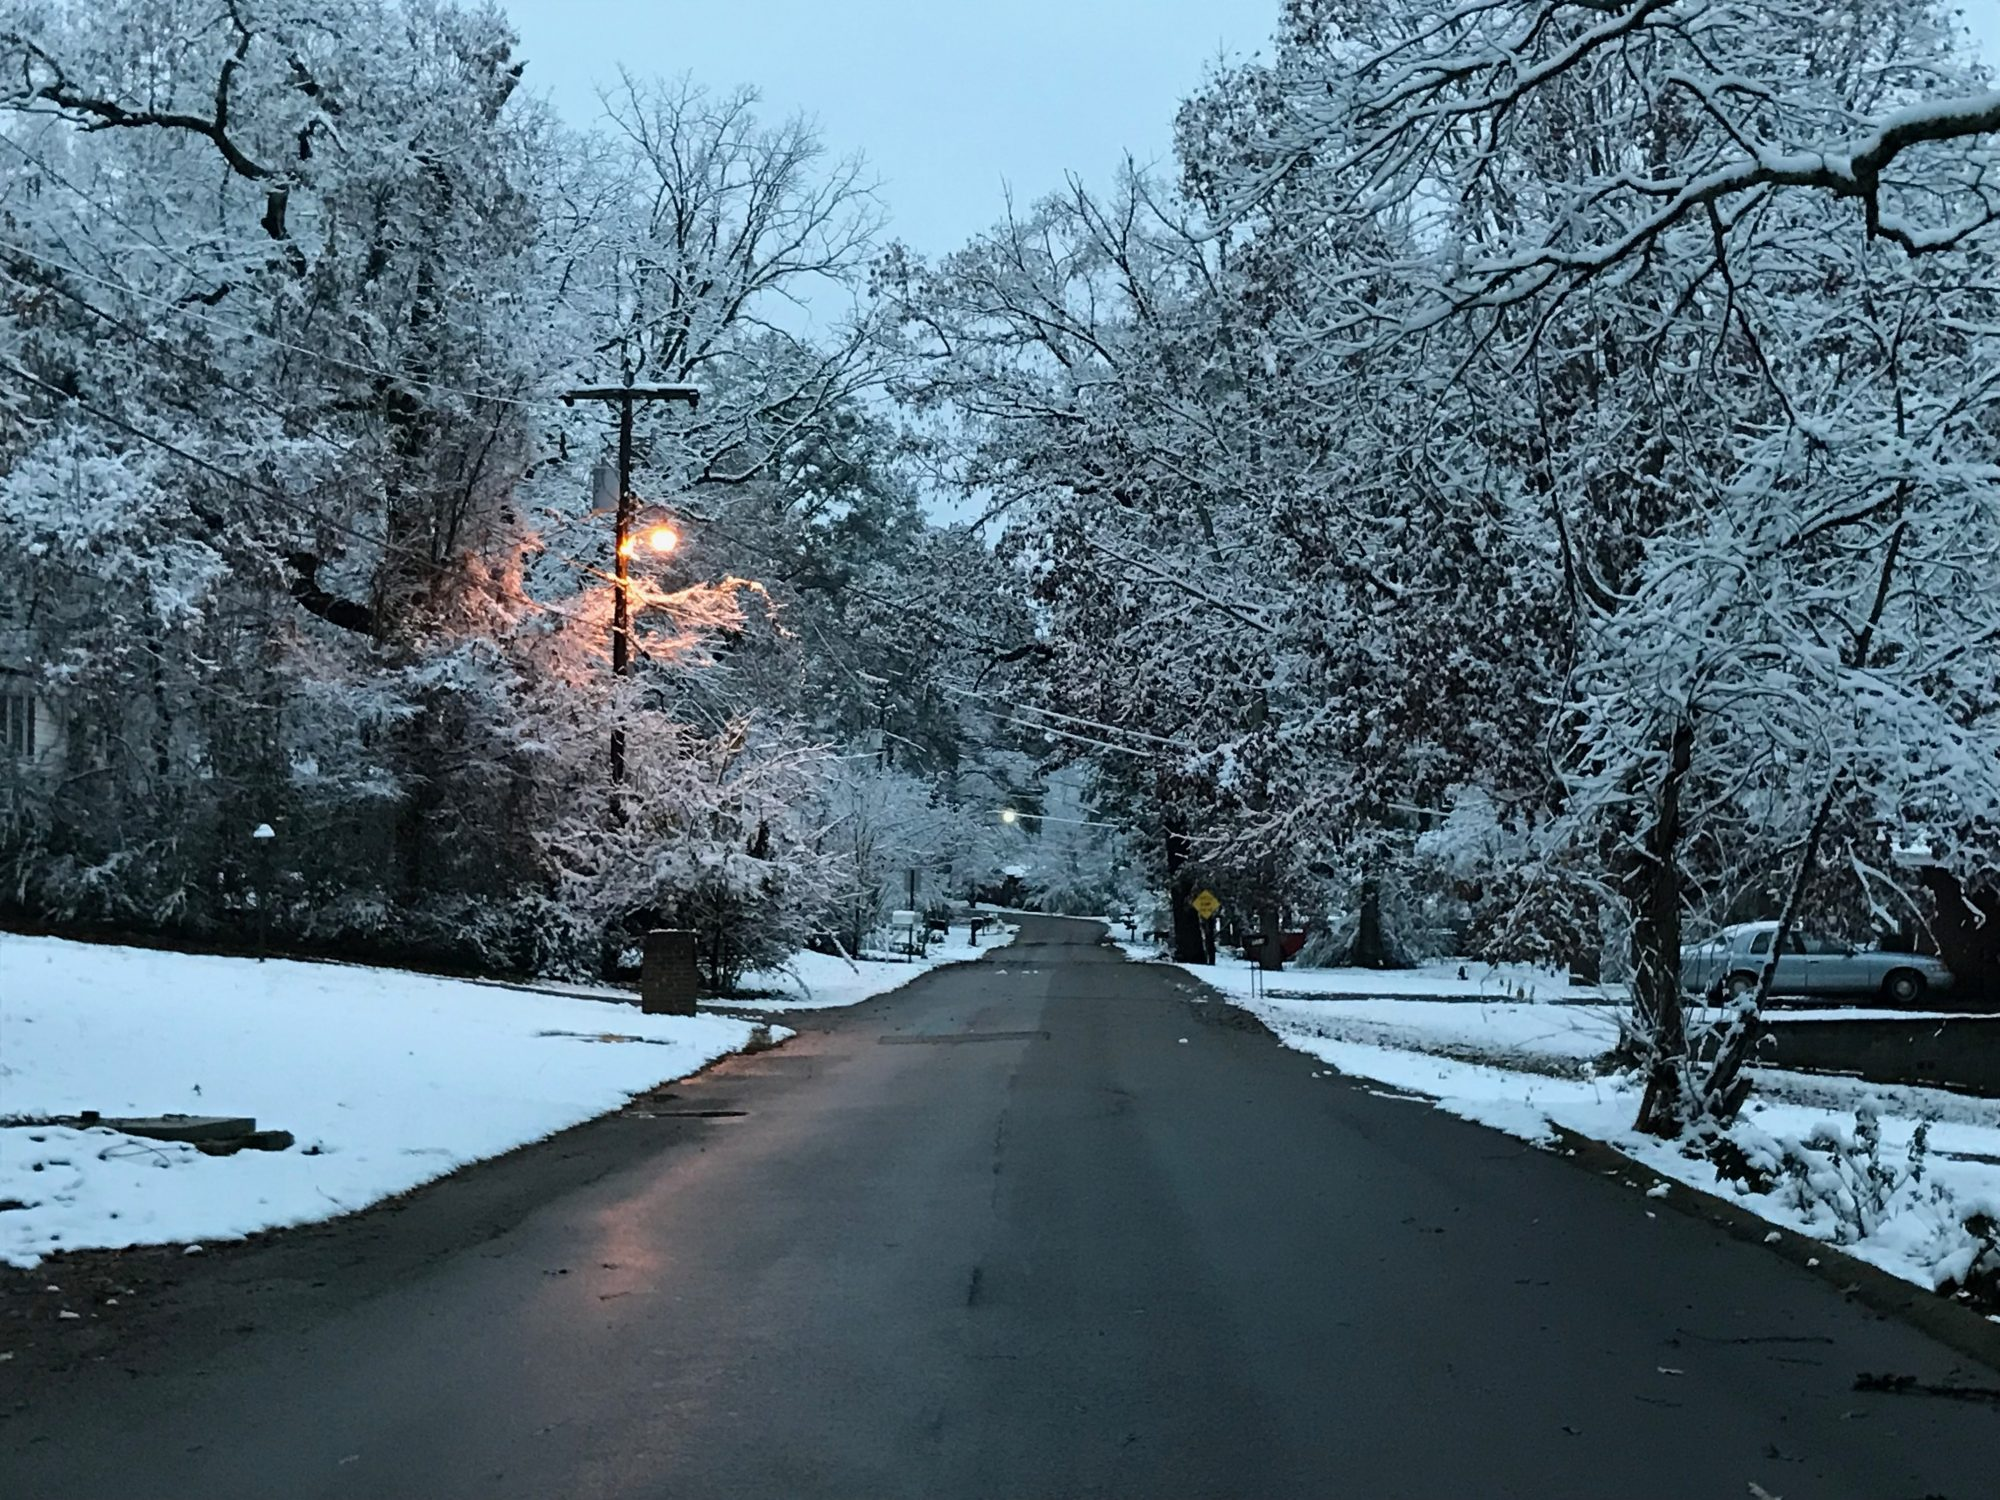 Alabama's beautiful snow in early December